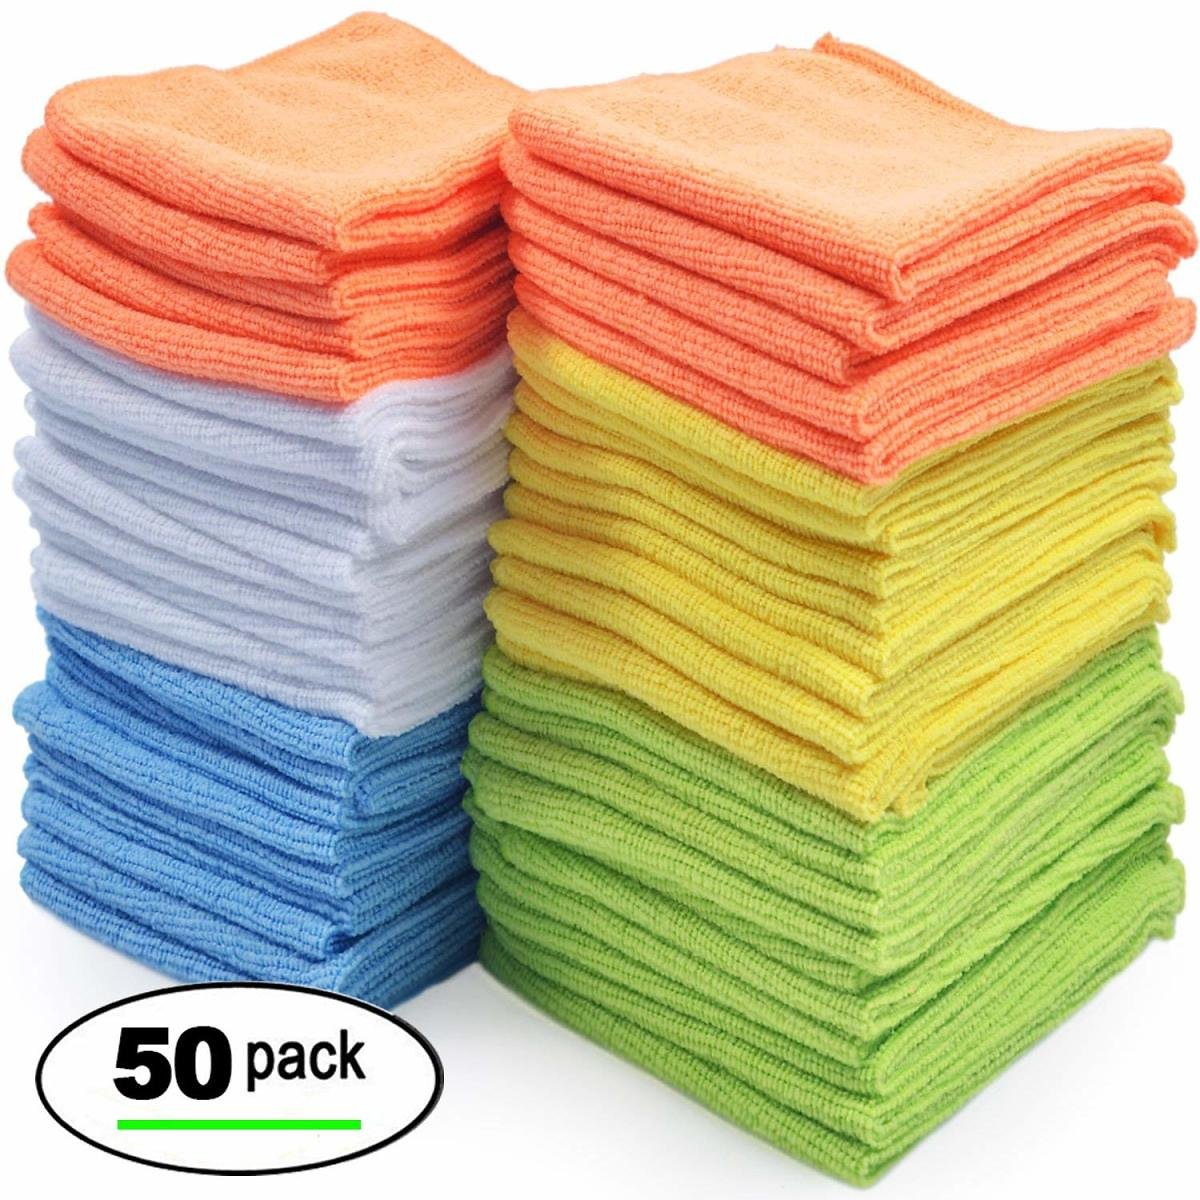 50-Ct. Best Microfiber Cleaning Cloths